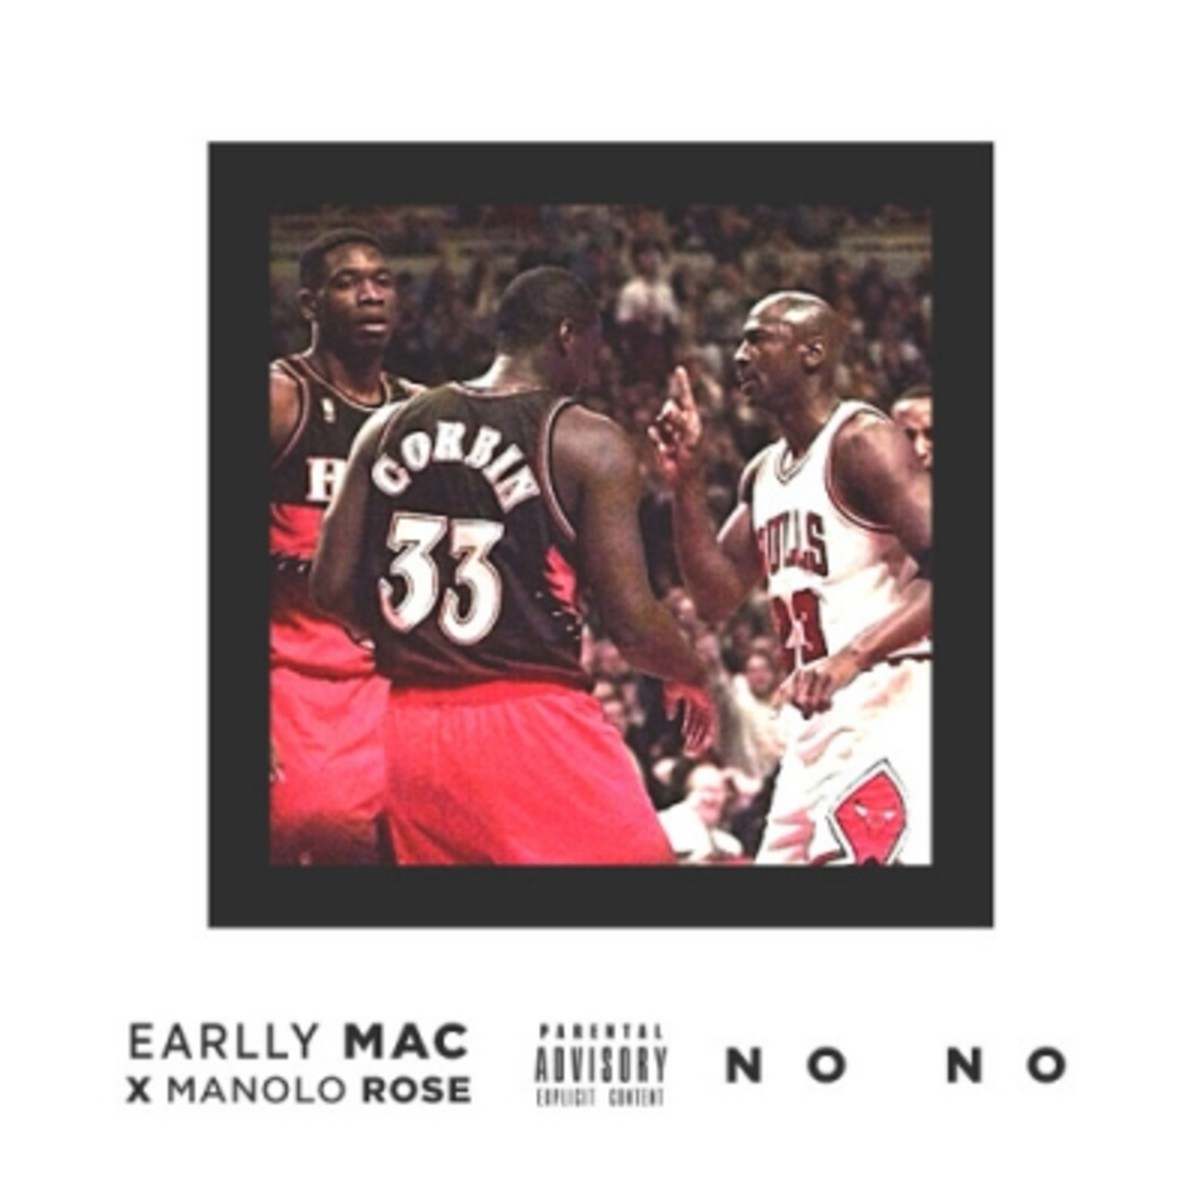 earlly-mac-no-no.jpg